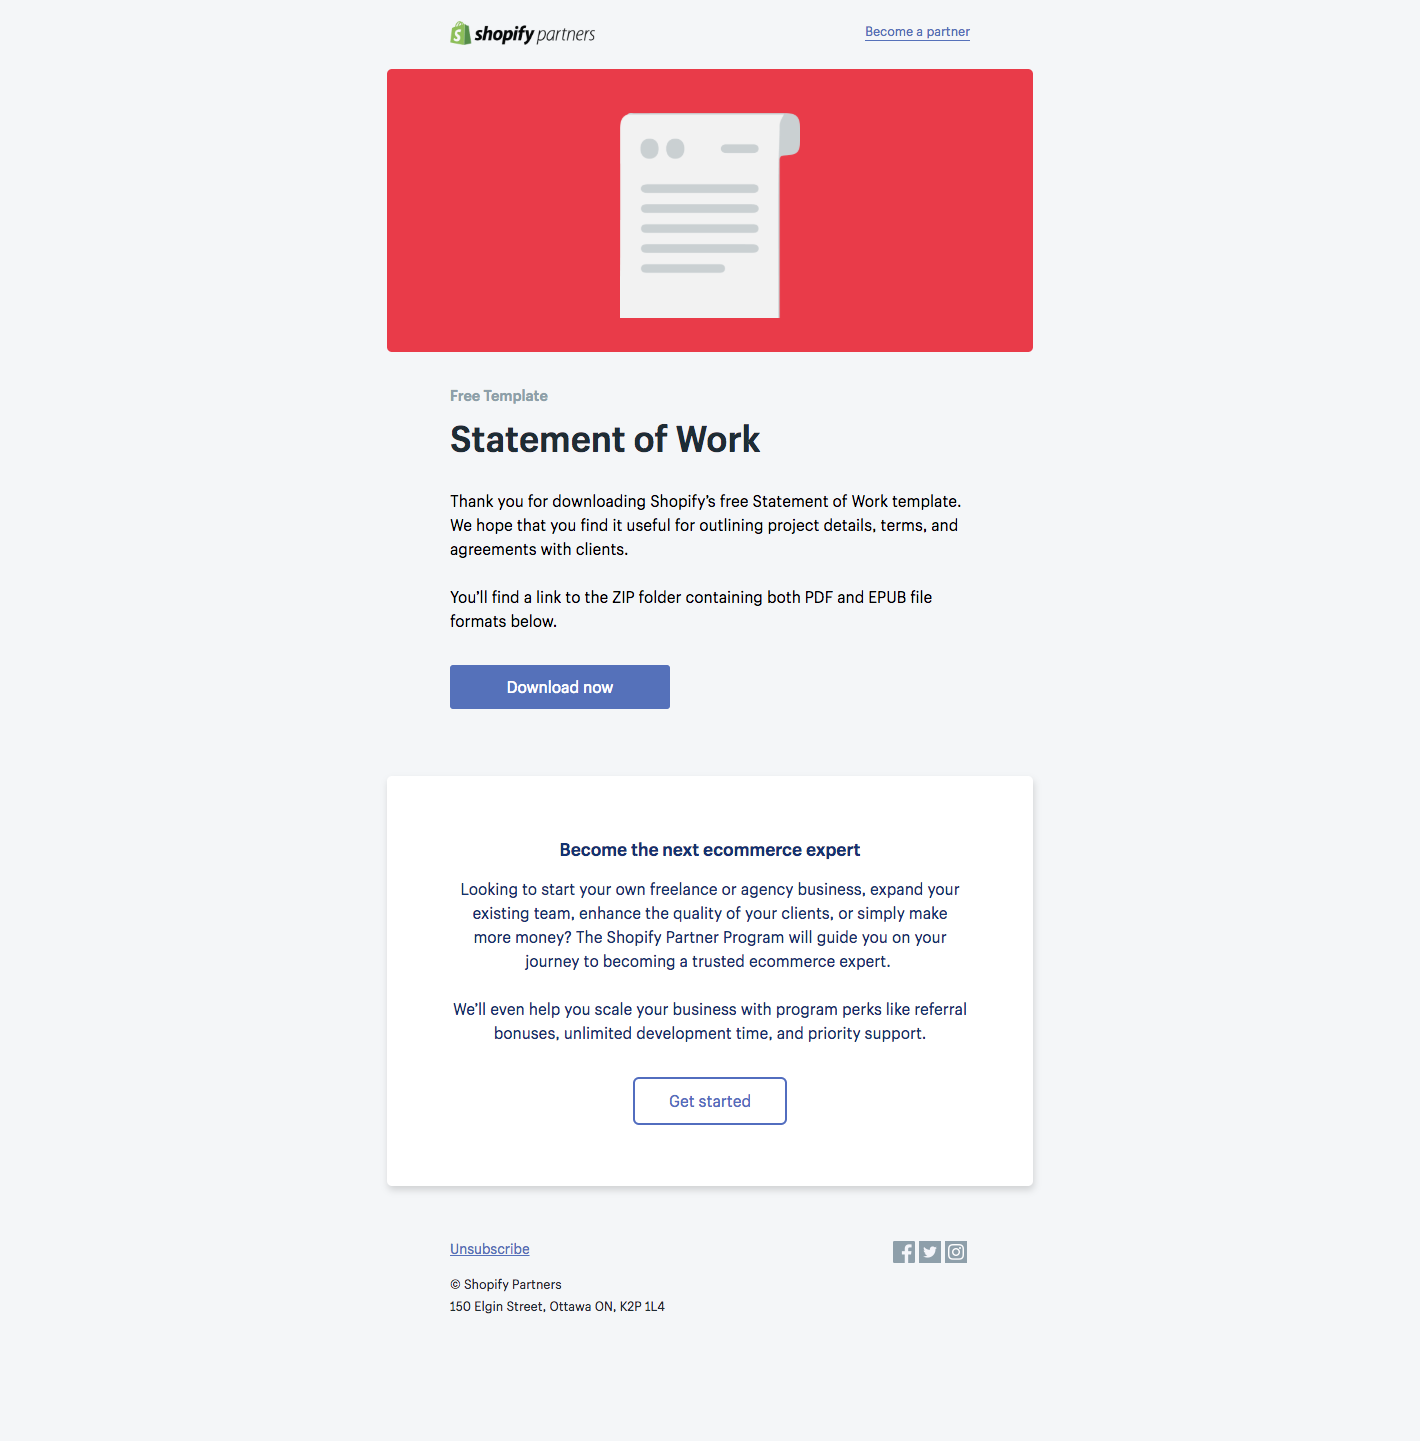 Email Onboarding Tear Down, Content Upgrade Edition: Shopify - Val